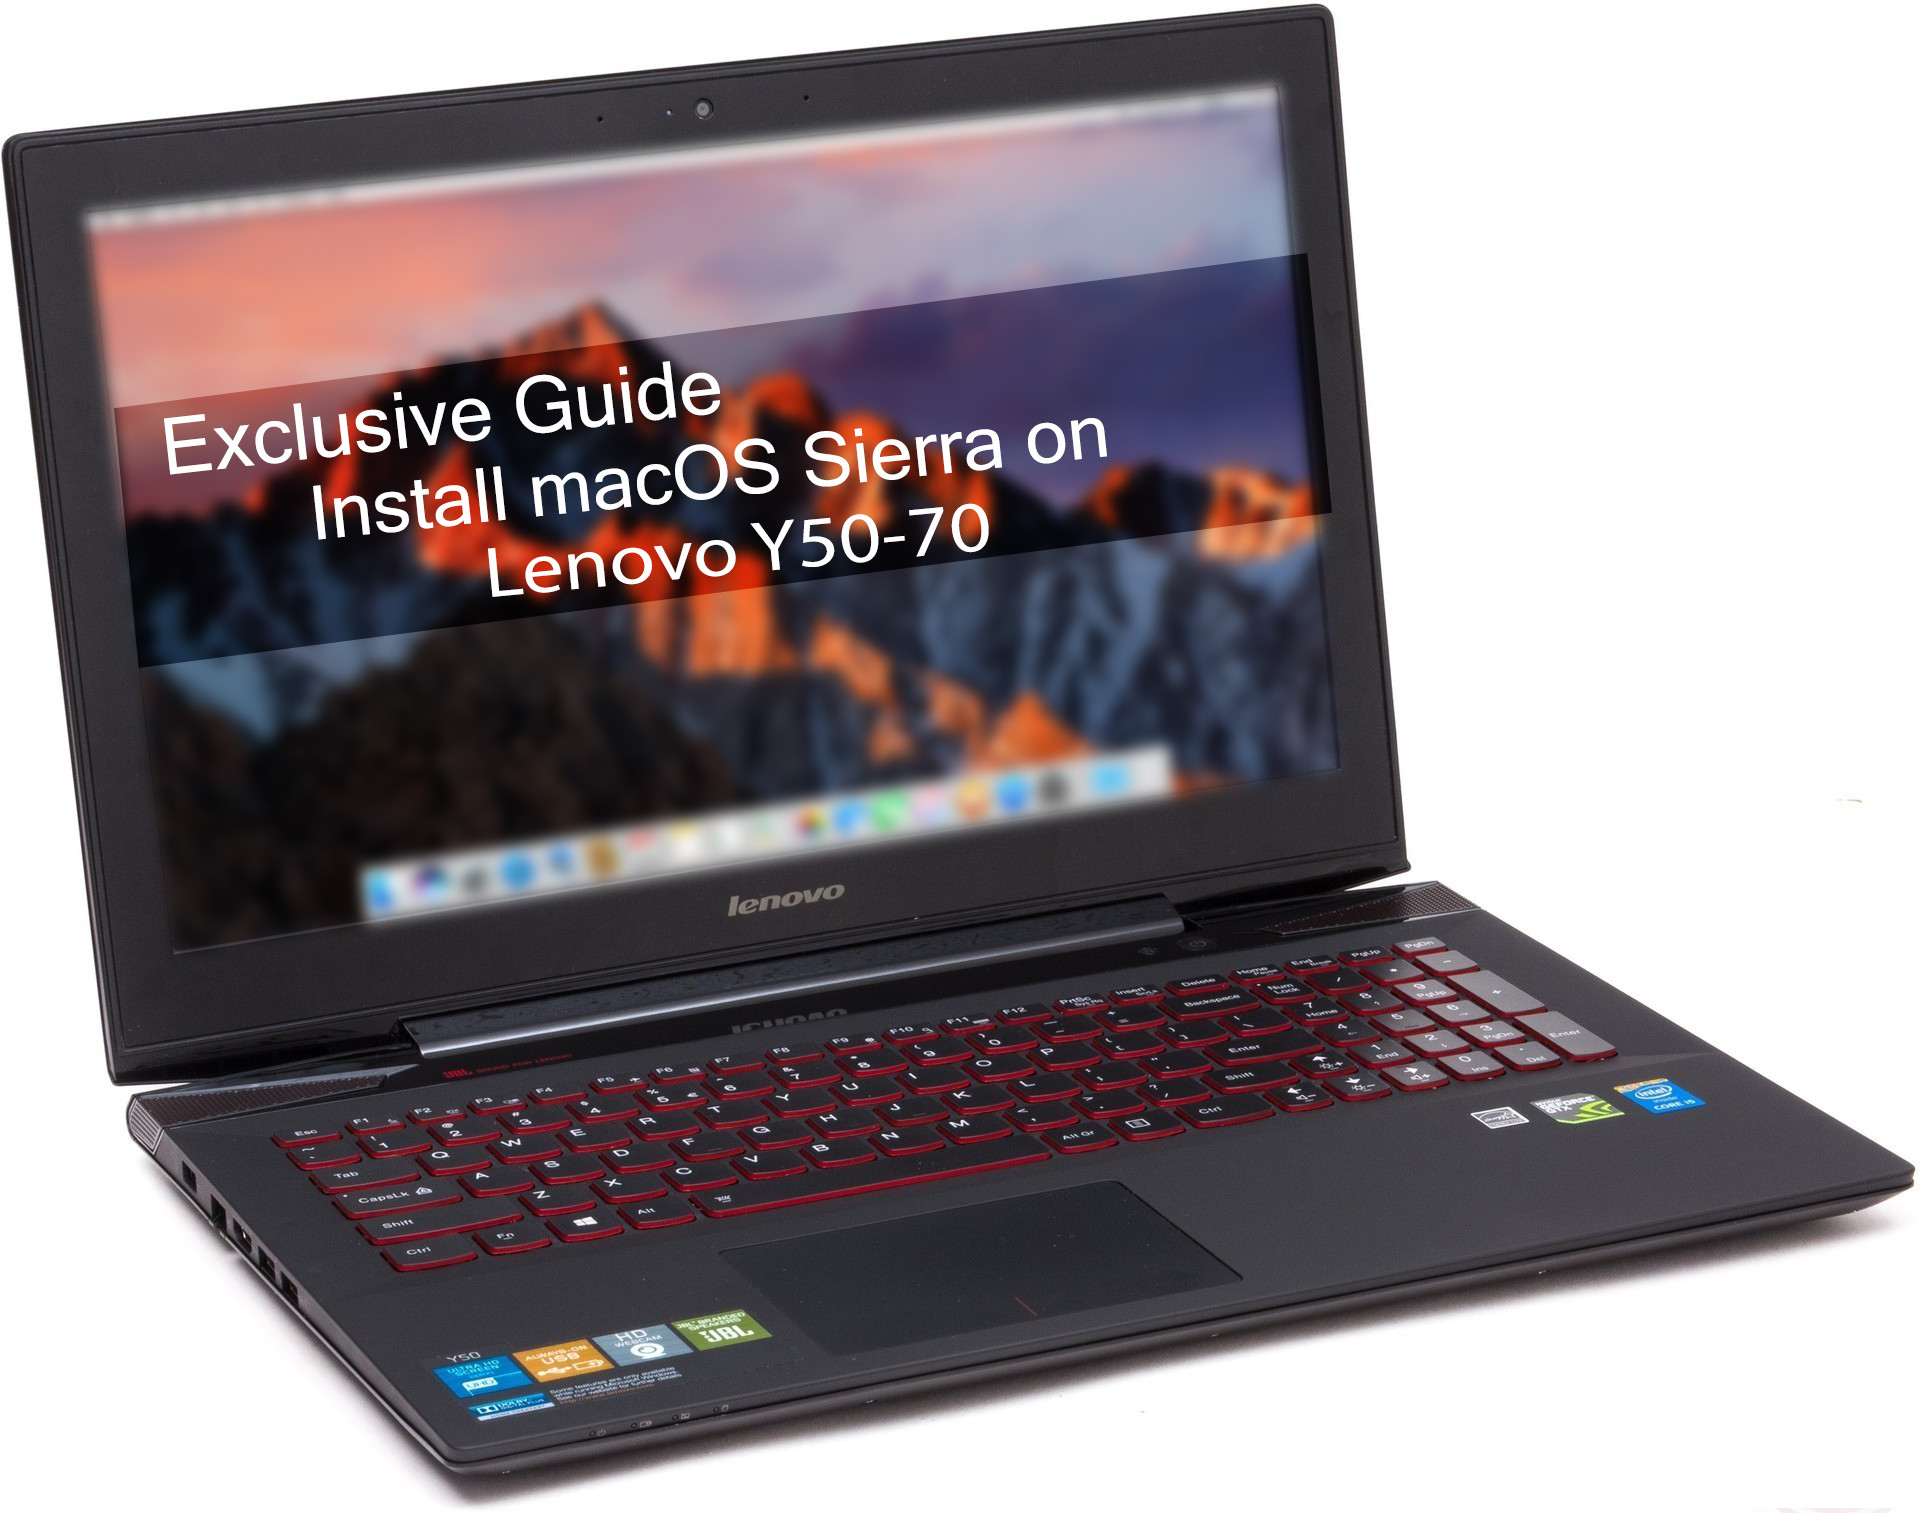 Exclusive Guide] Install macOS Sierra on Lenovo Y50-70